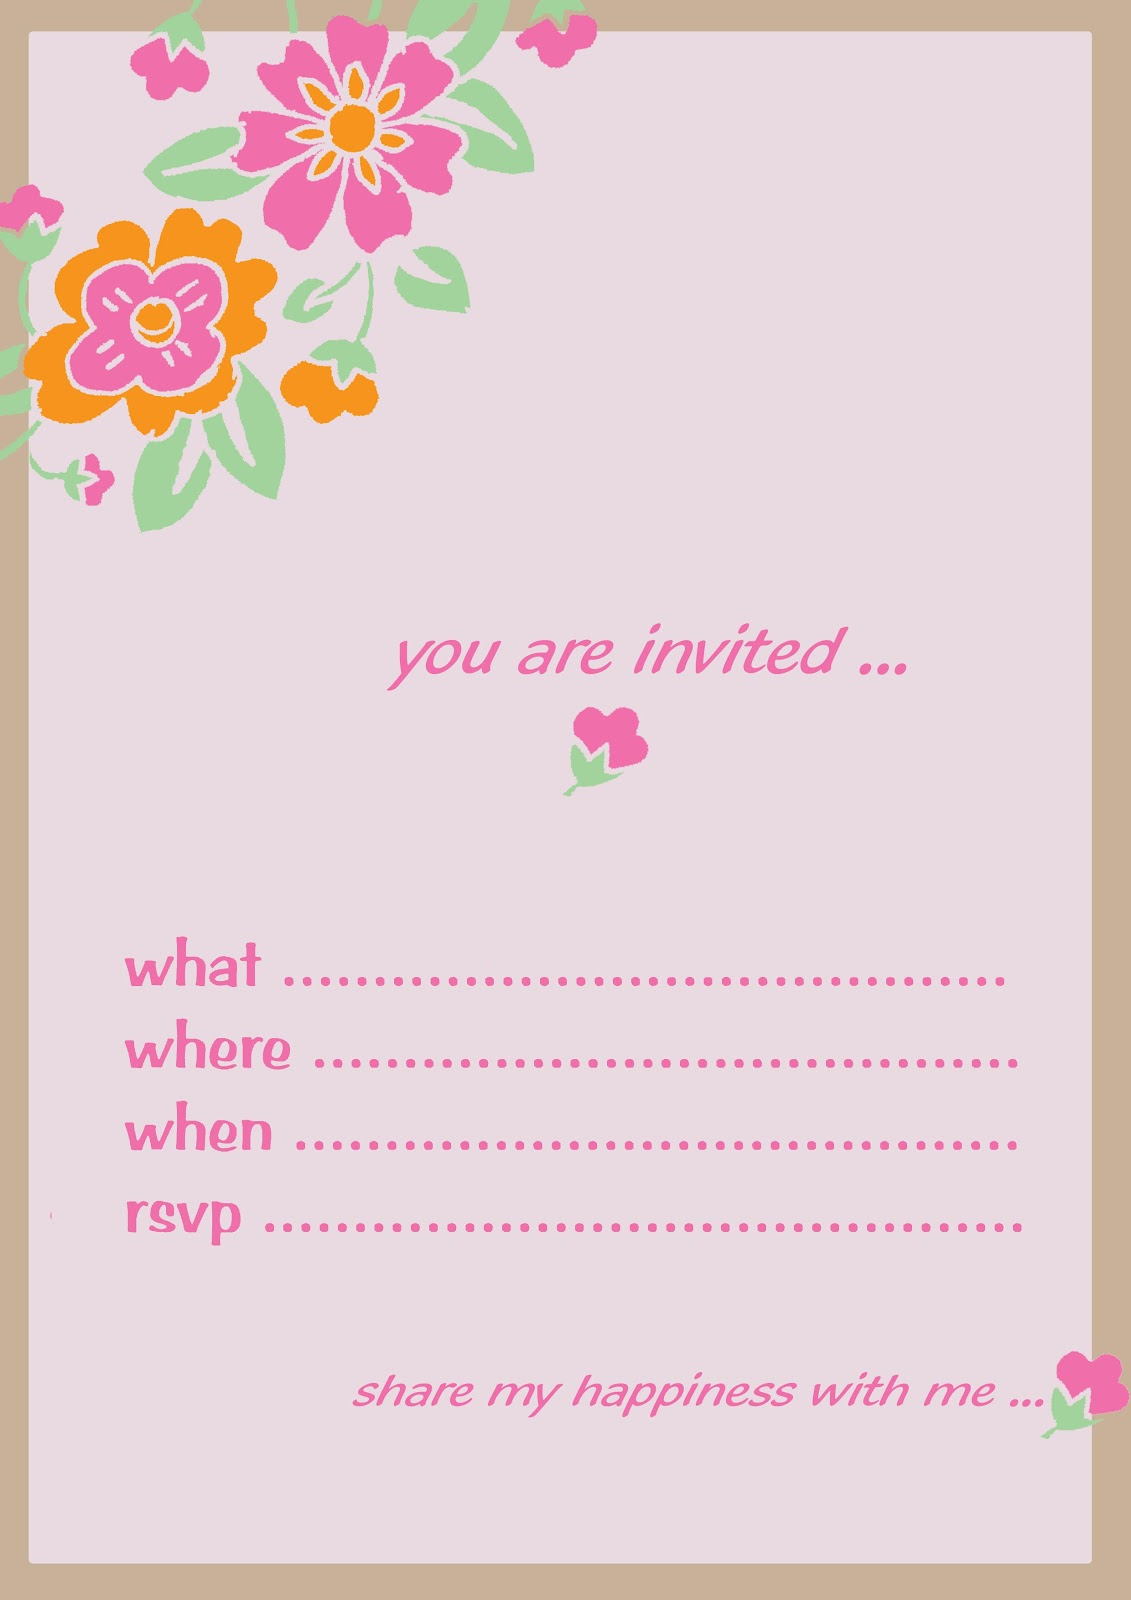 It's just a picture of Peaceful Birthday Invitation Cards Free